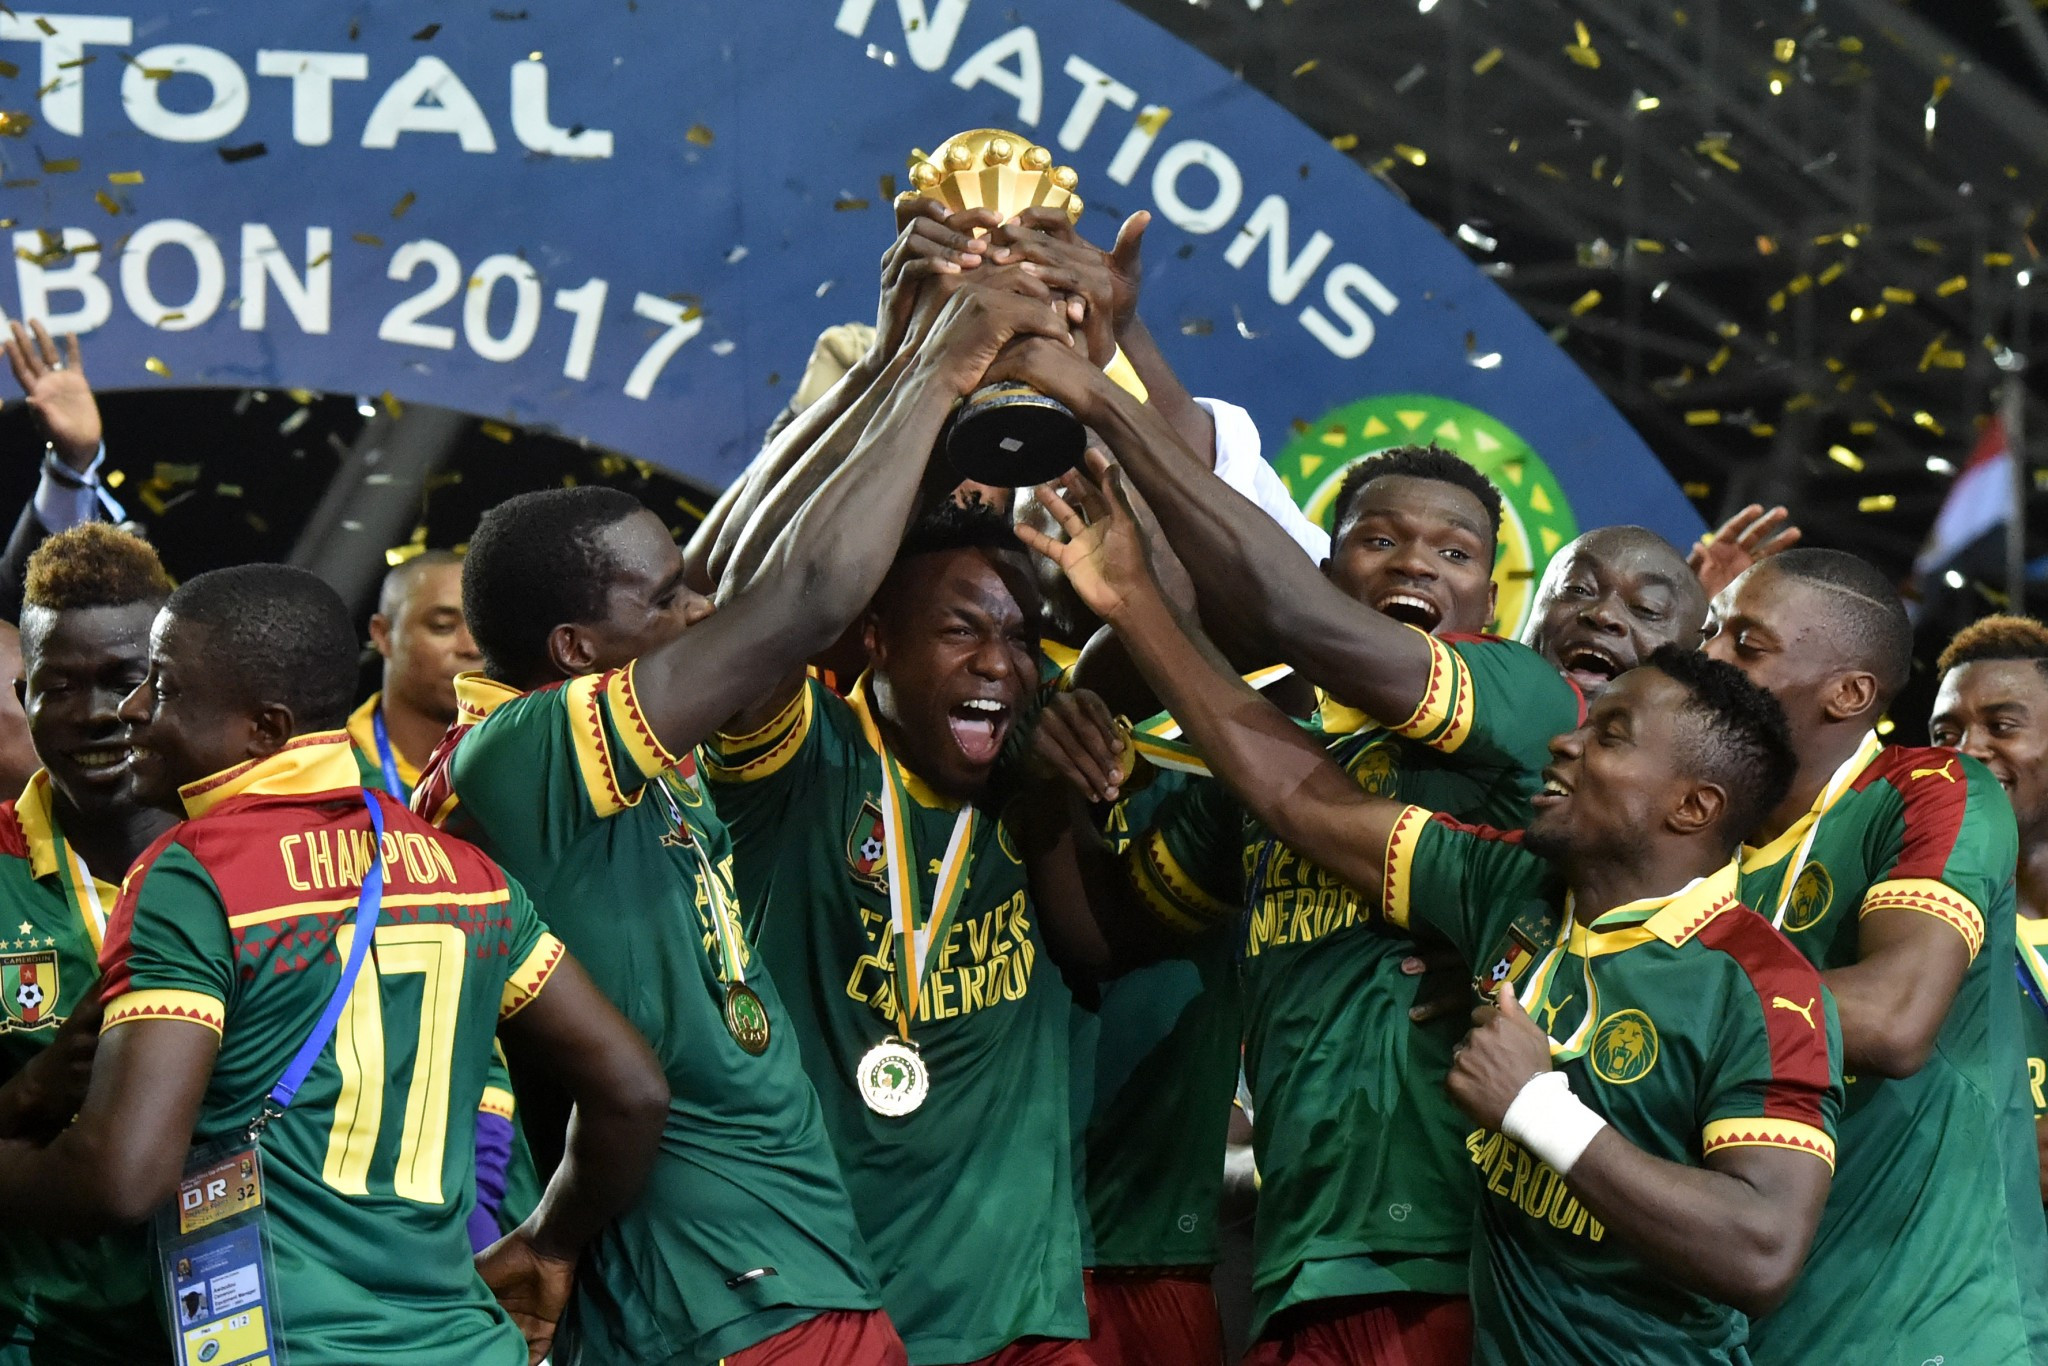 Cameroon political twist: normalisation committee adds to doubt over 2019 AFCON hosting